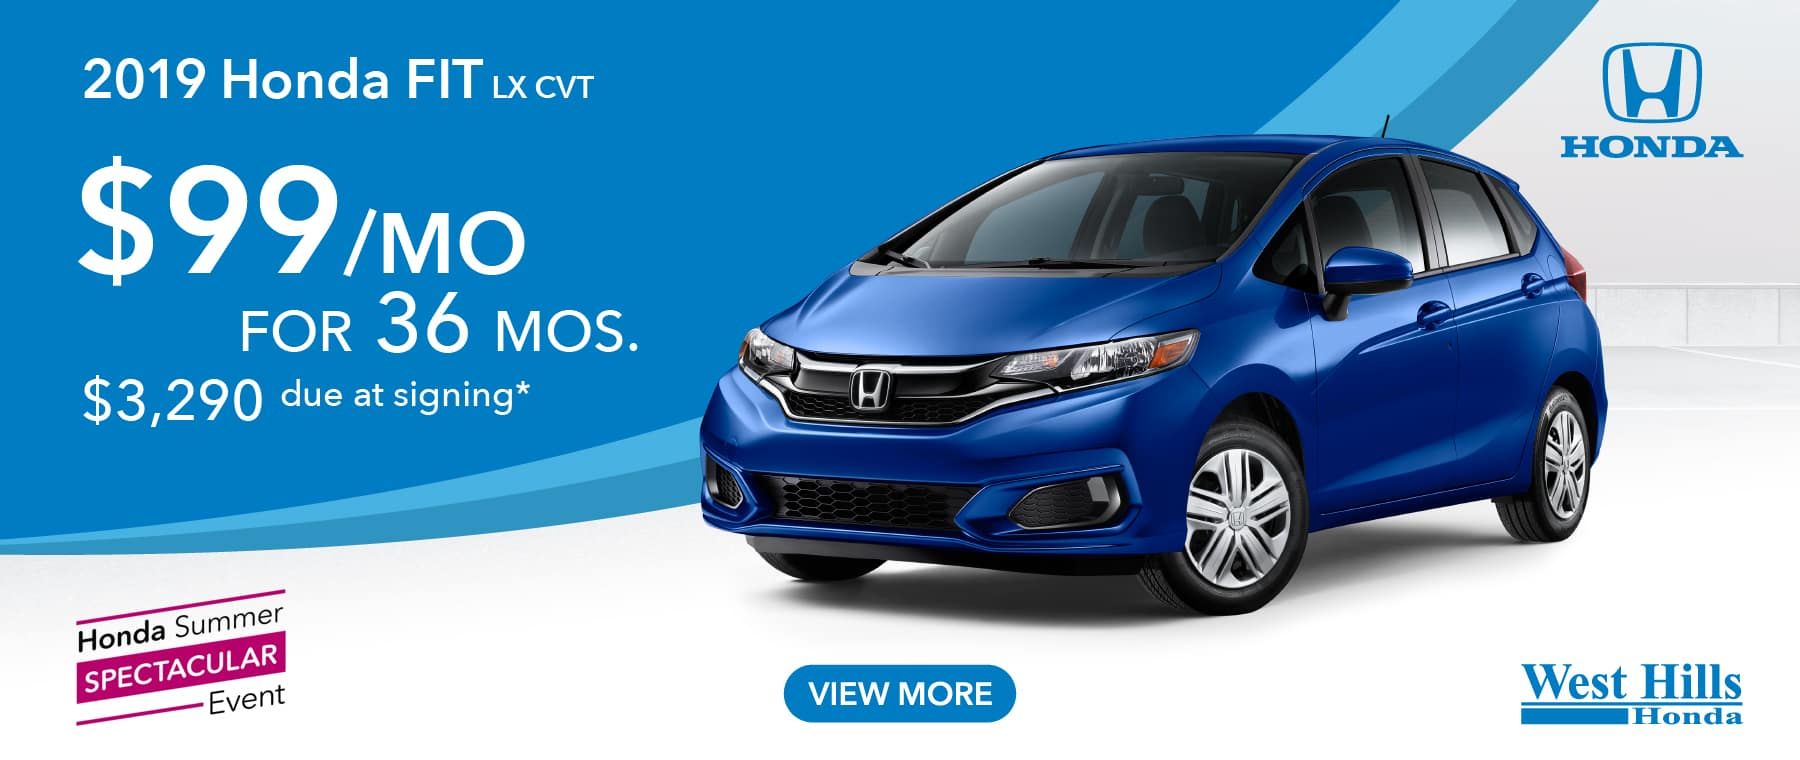 West Hills Honda | Car Dealership & Service Center in Bremerton, WA